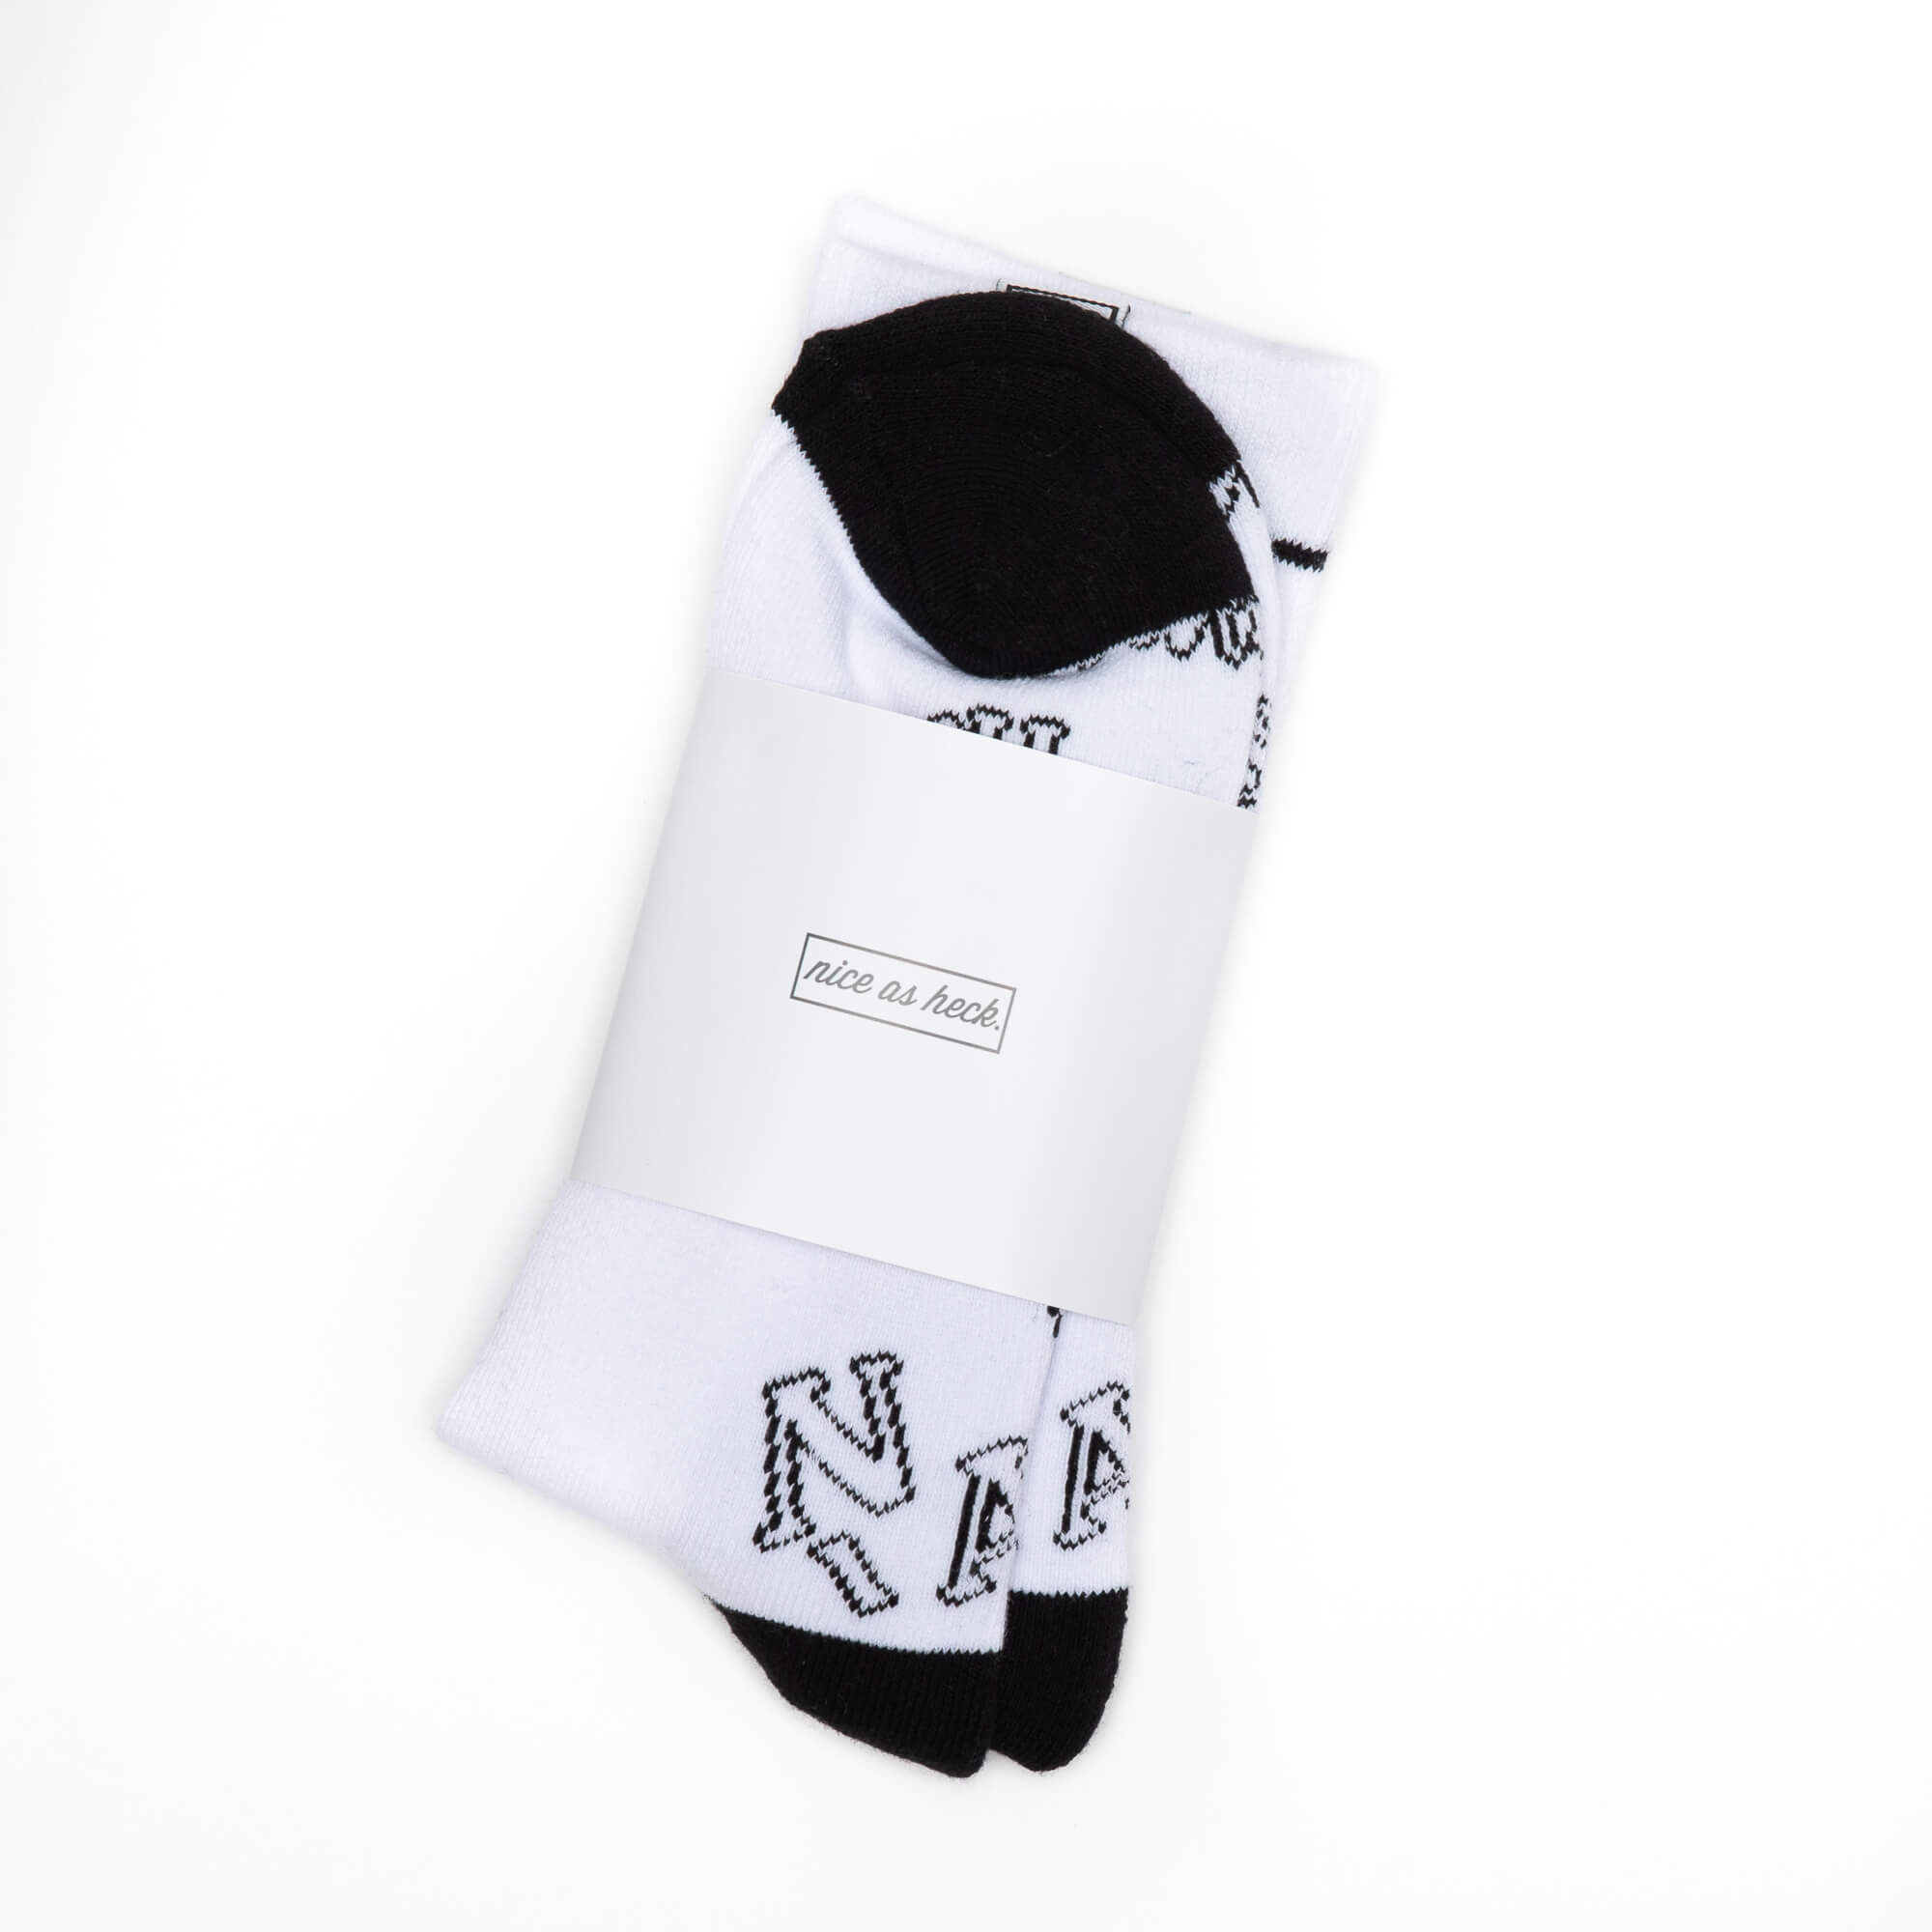 white jim socks in packaging